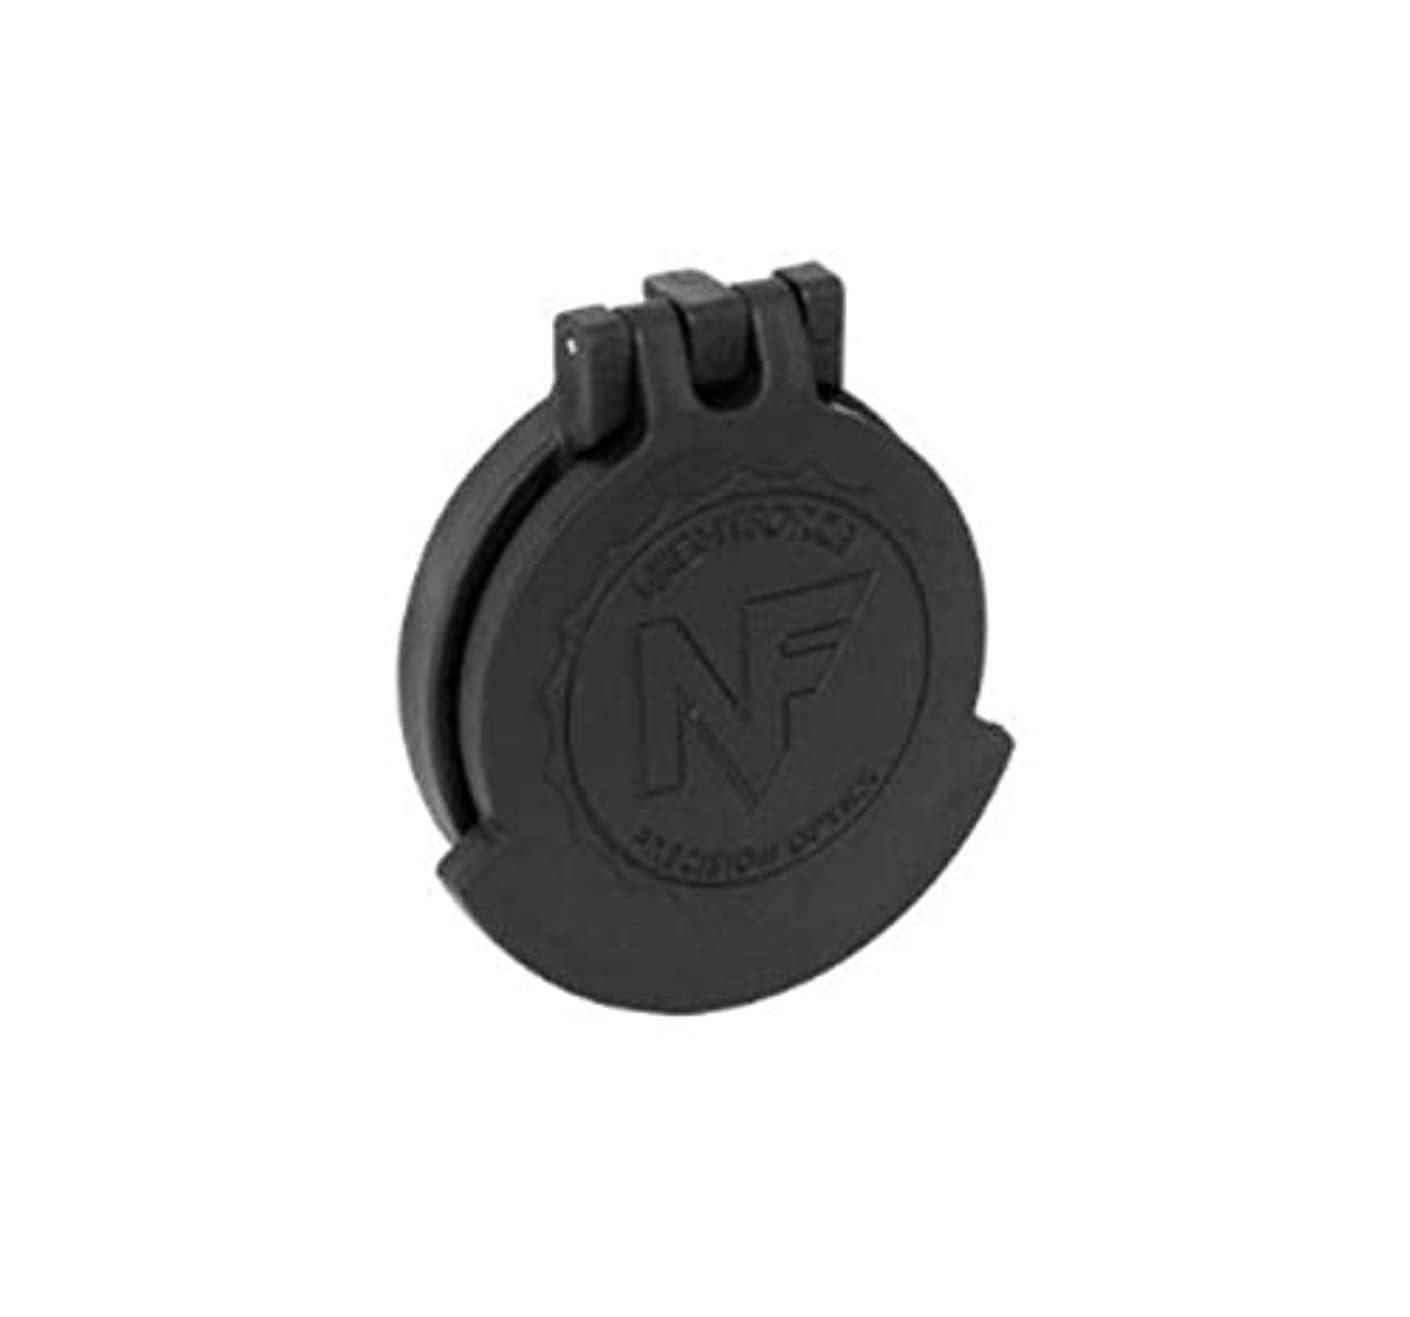 Nightforce Objective Flip-Up Lens Caps - 50mm ATACR A392